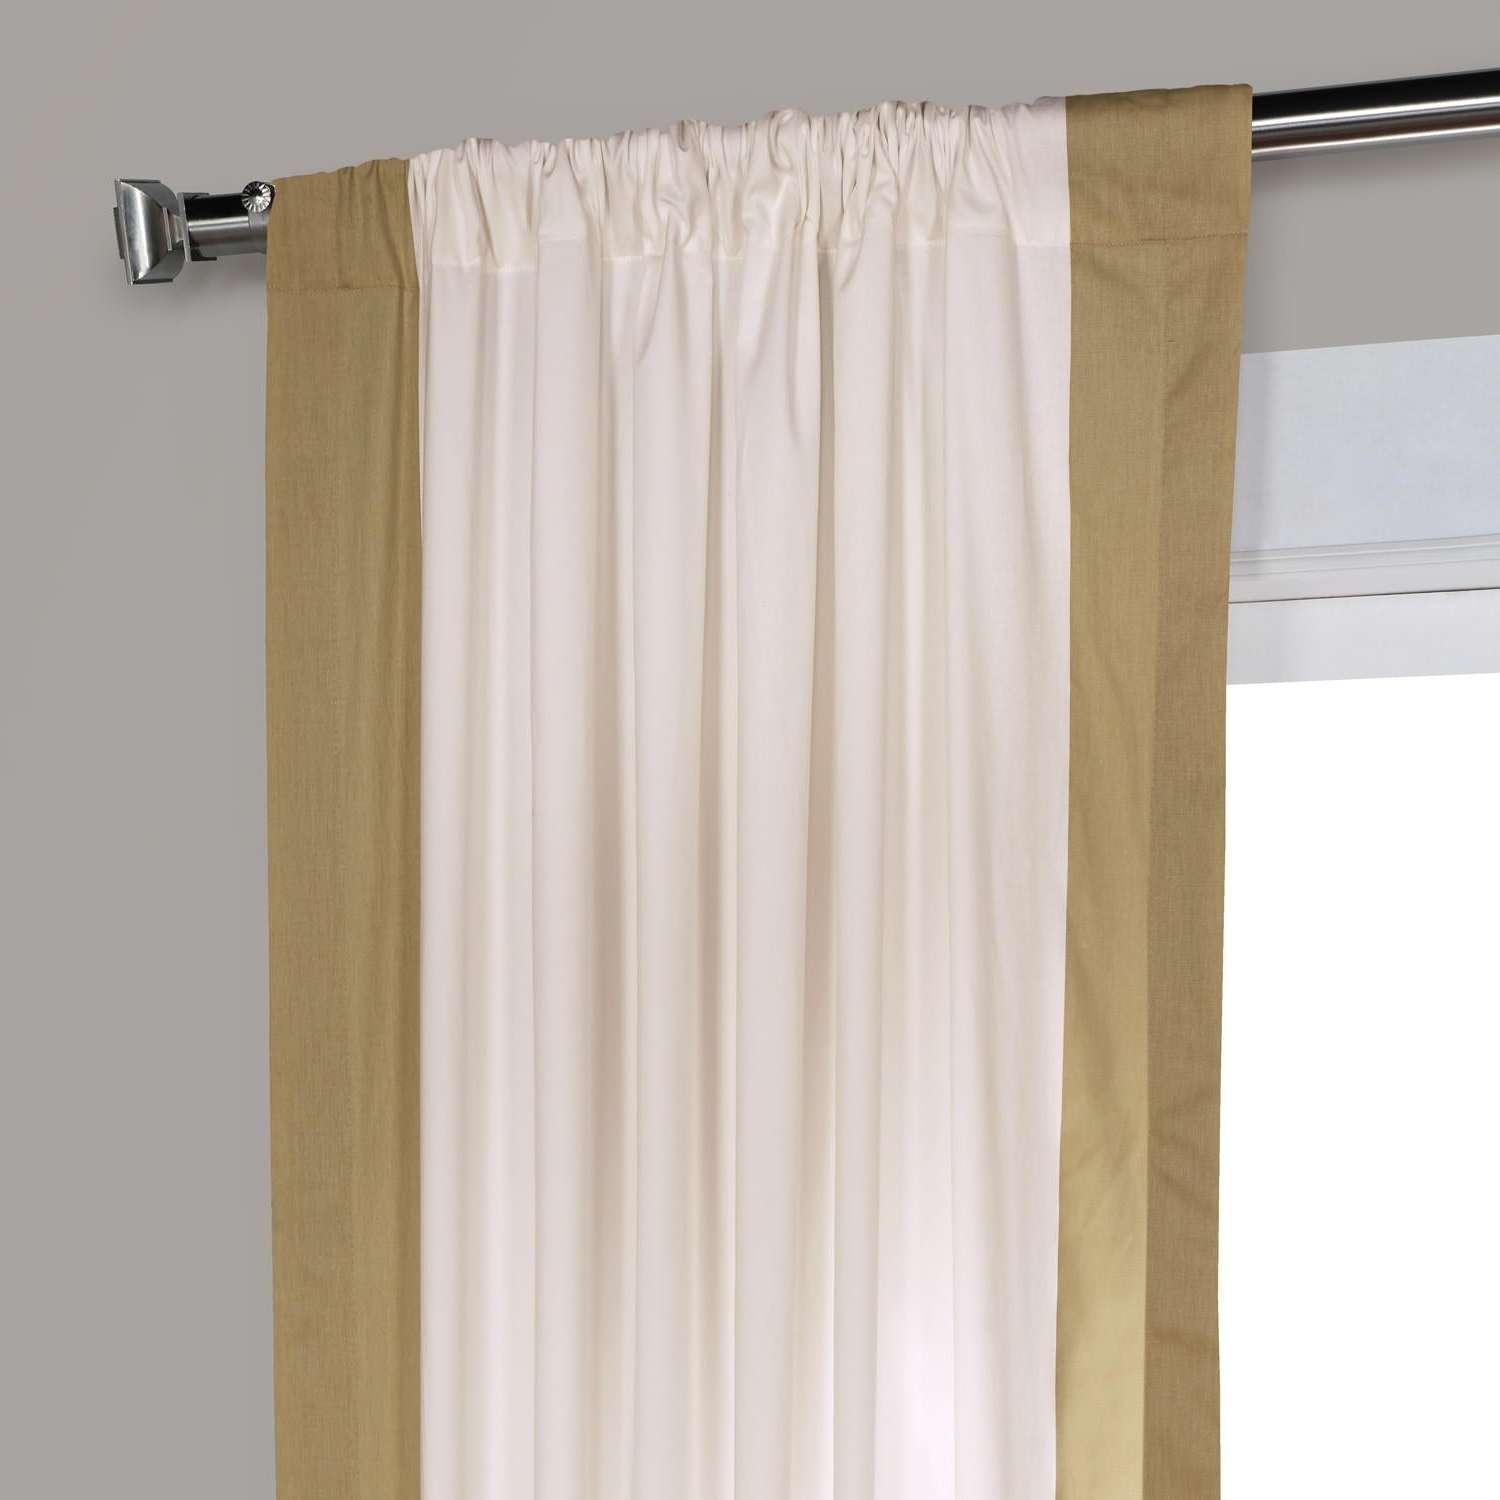 Vertical Colorblock Panama Curtains Pertaining To Most Popular Exclusive Fabrics Vertical Colorblock Panama Curtain (View 7 of 20)